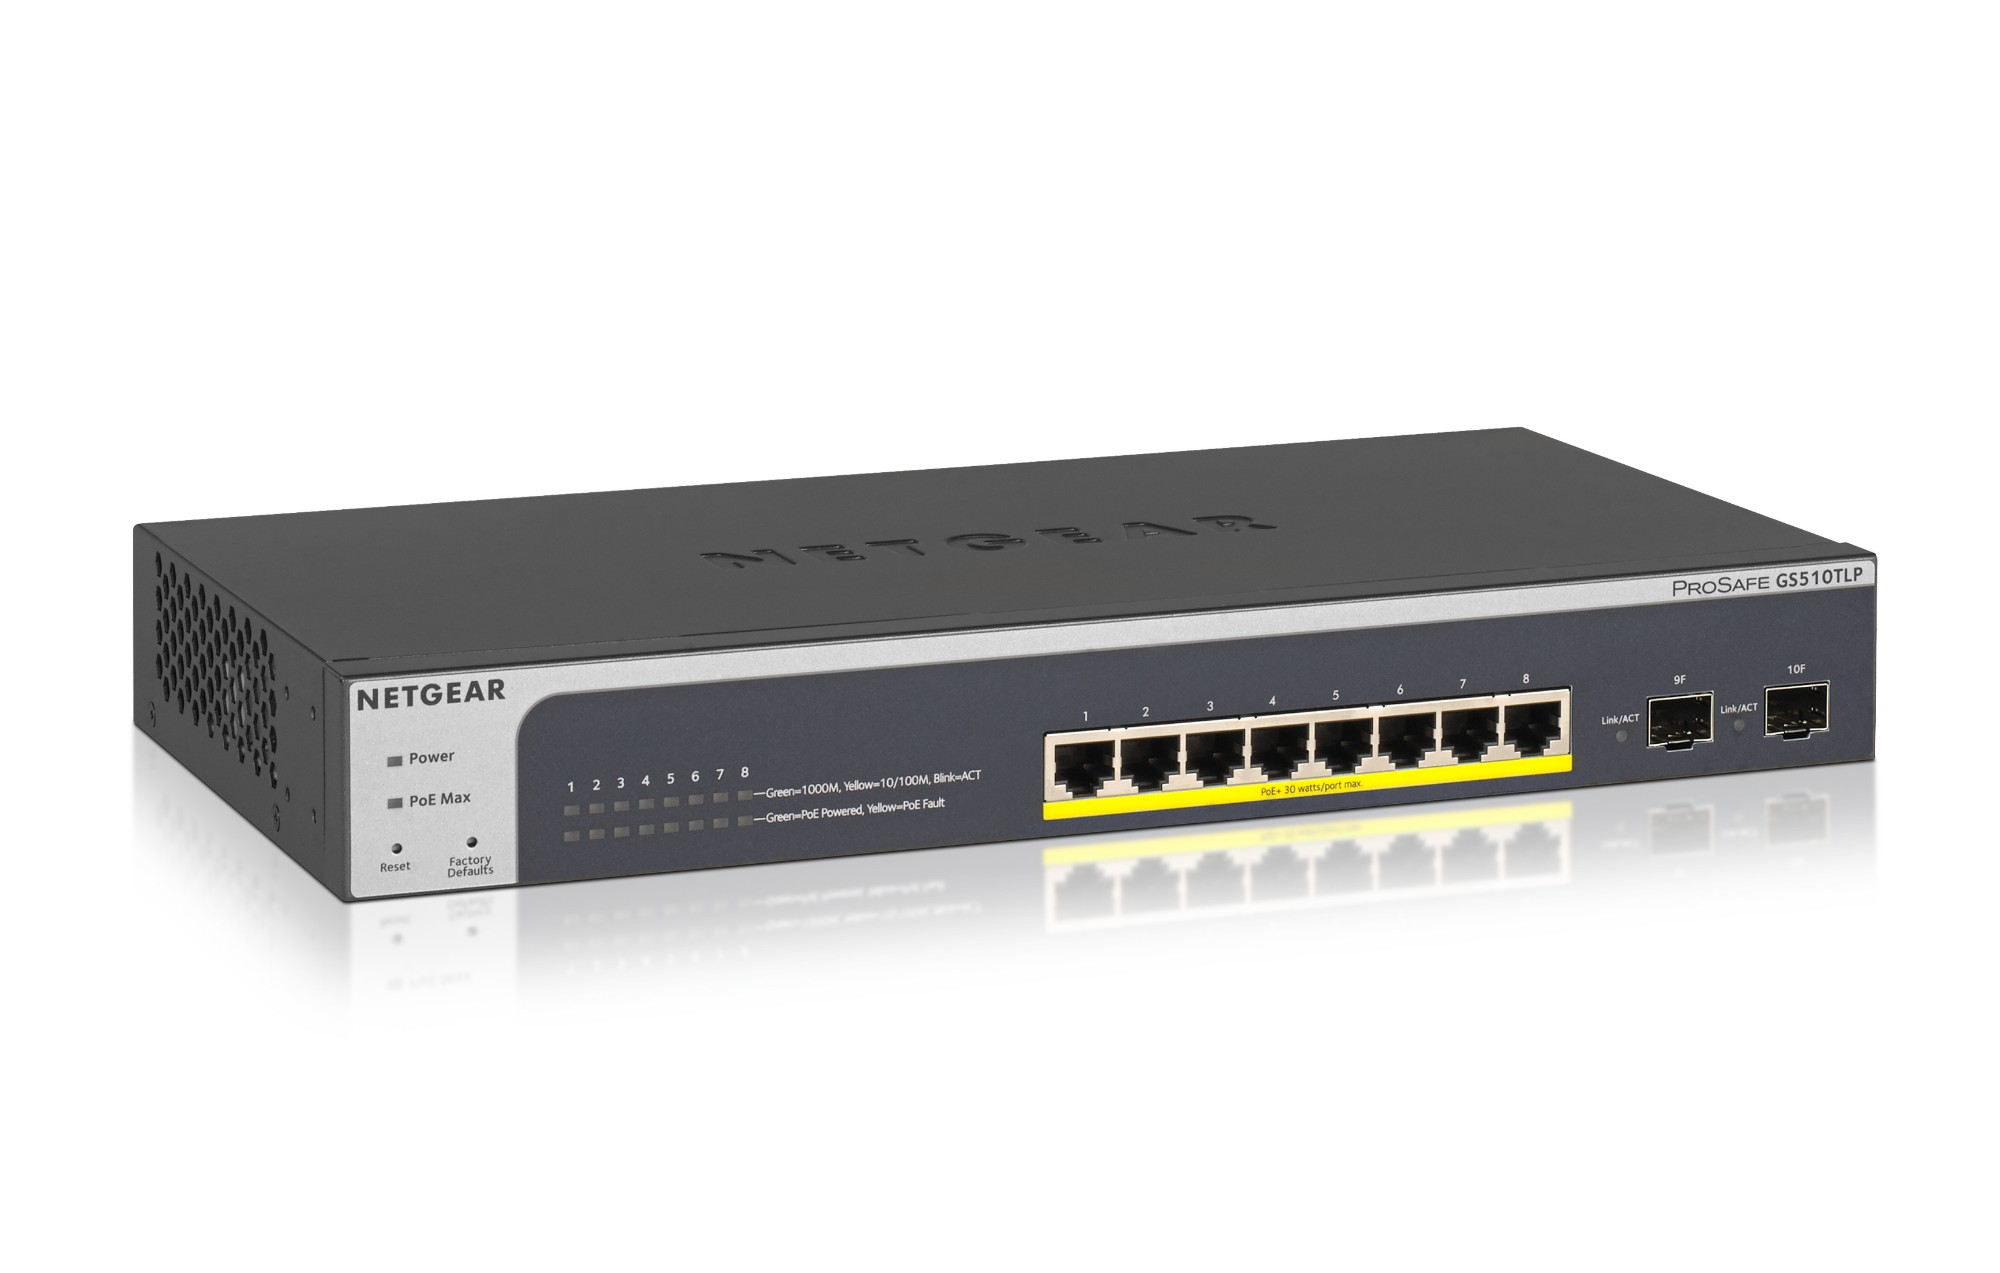 Netgear GS510TLP Managed L2/L3/L4 Gigabit Ethernet (10/100/1000) Power over Ethernet (PoE) Black